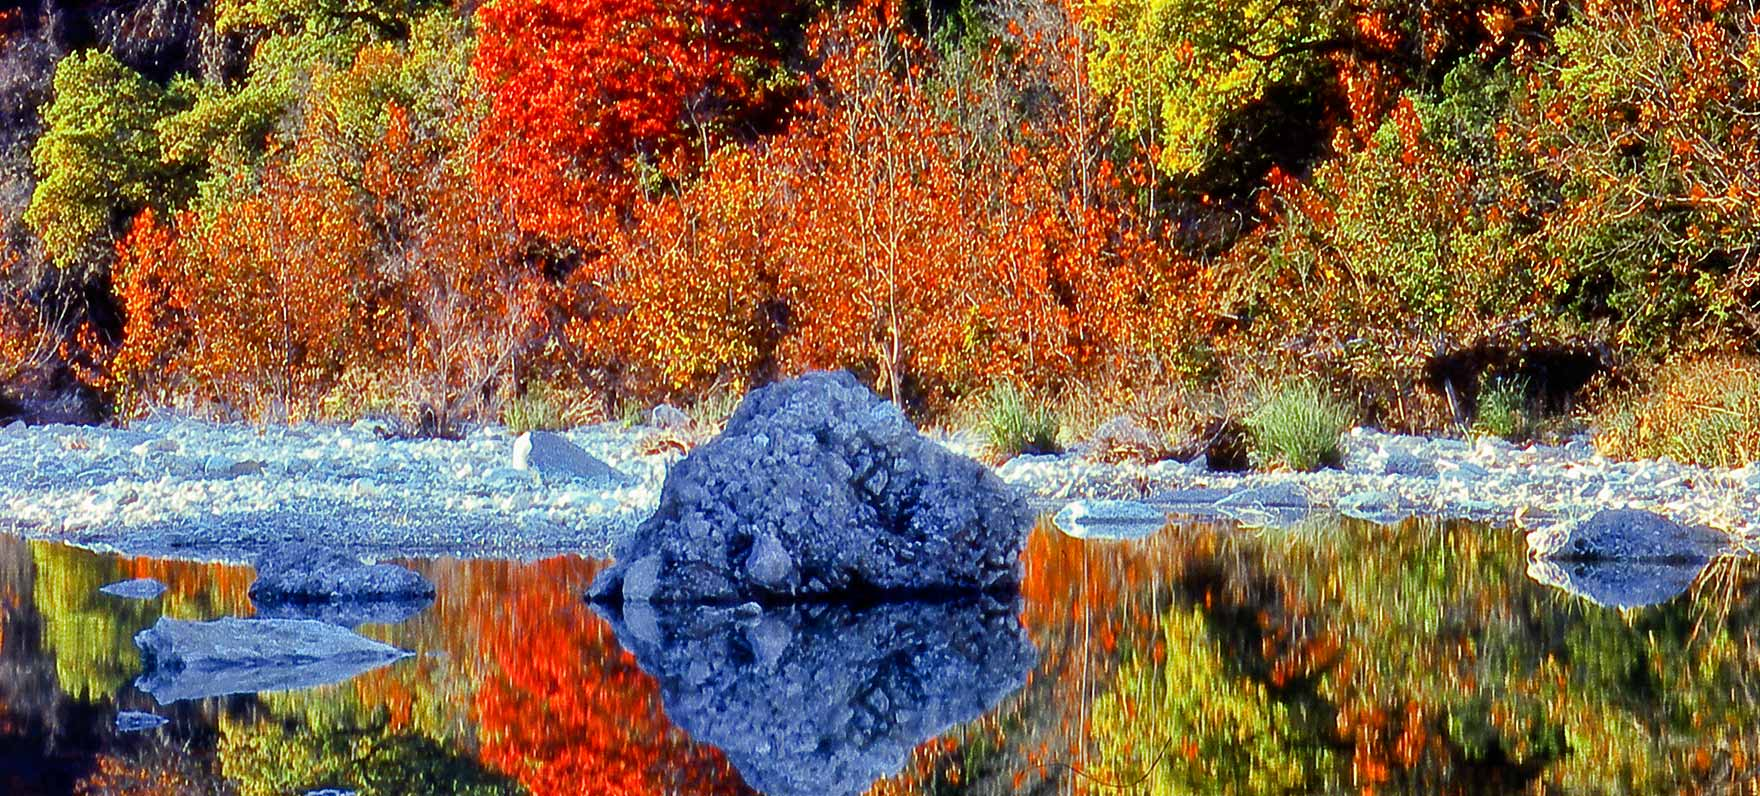 New Hampshire Fall Foliage Wallpaper Lost Maples State Natural Area Texas Parks Amp Wildlife